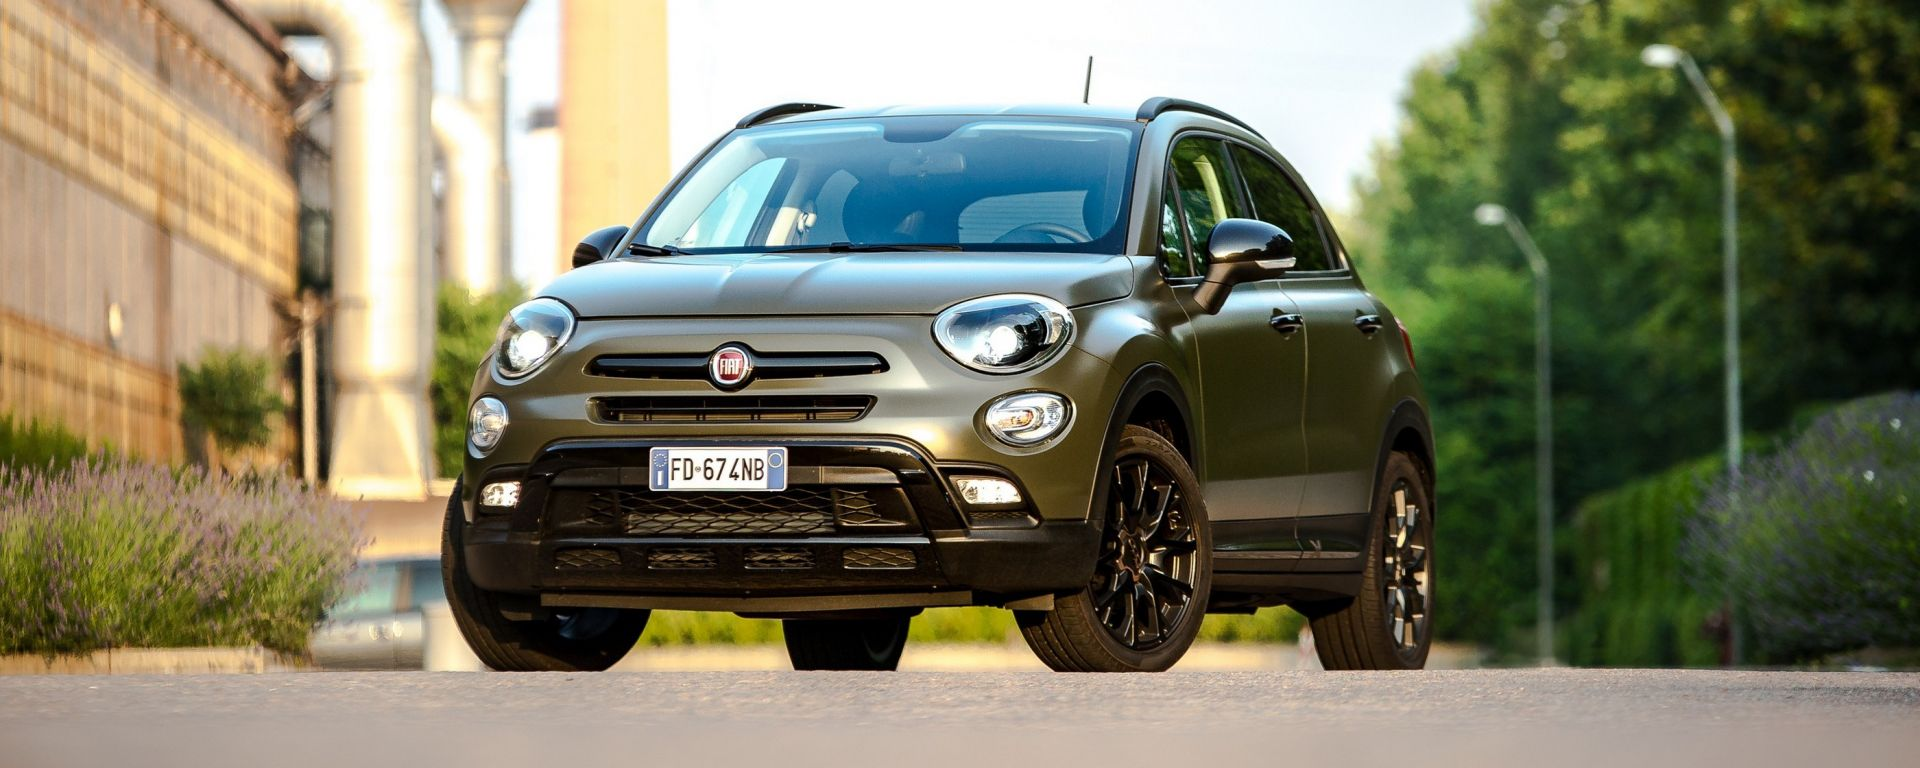 fiat 500x s design la serie speciale del crossover costa euro motorbox. Black Bedroom Furniture Sets. Home Design Ideas